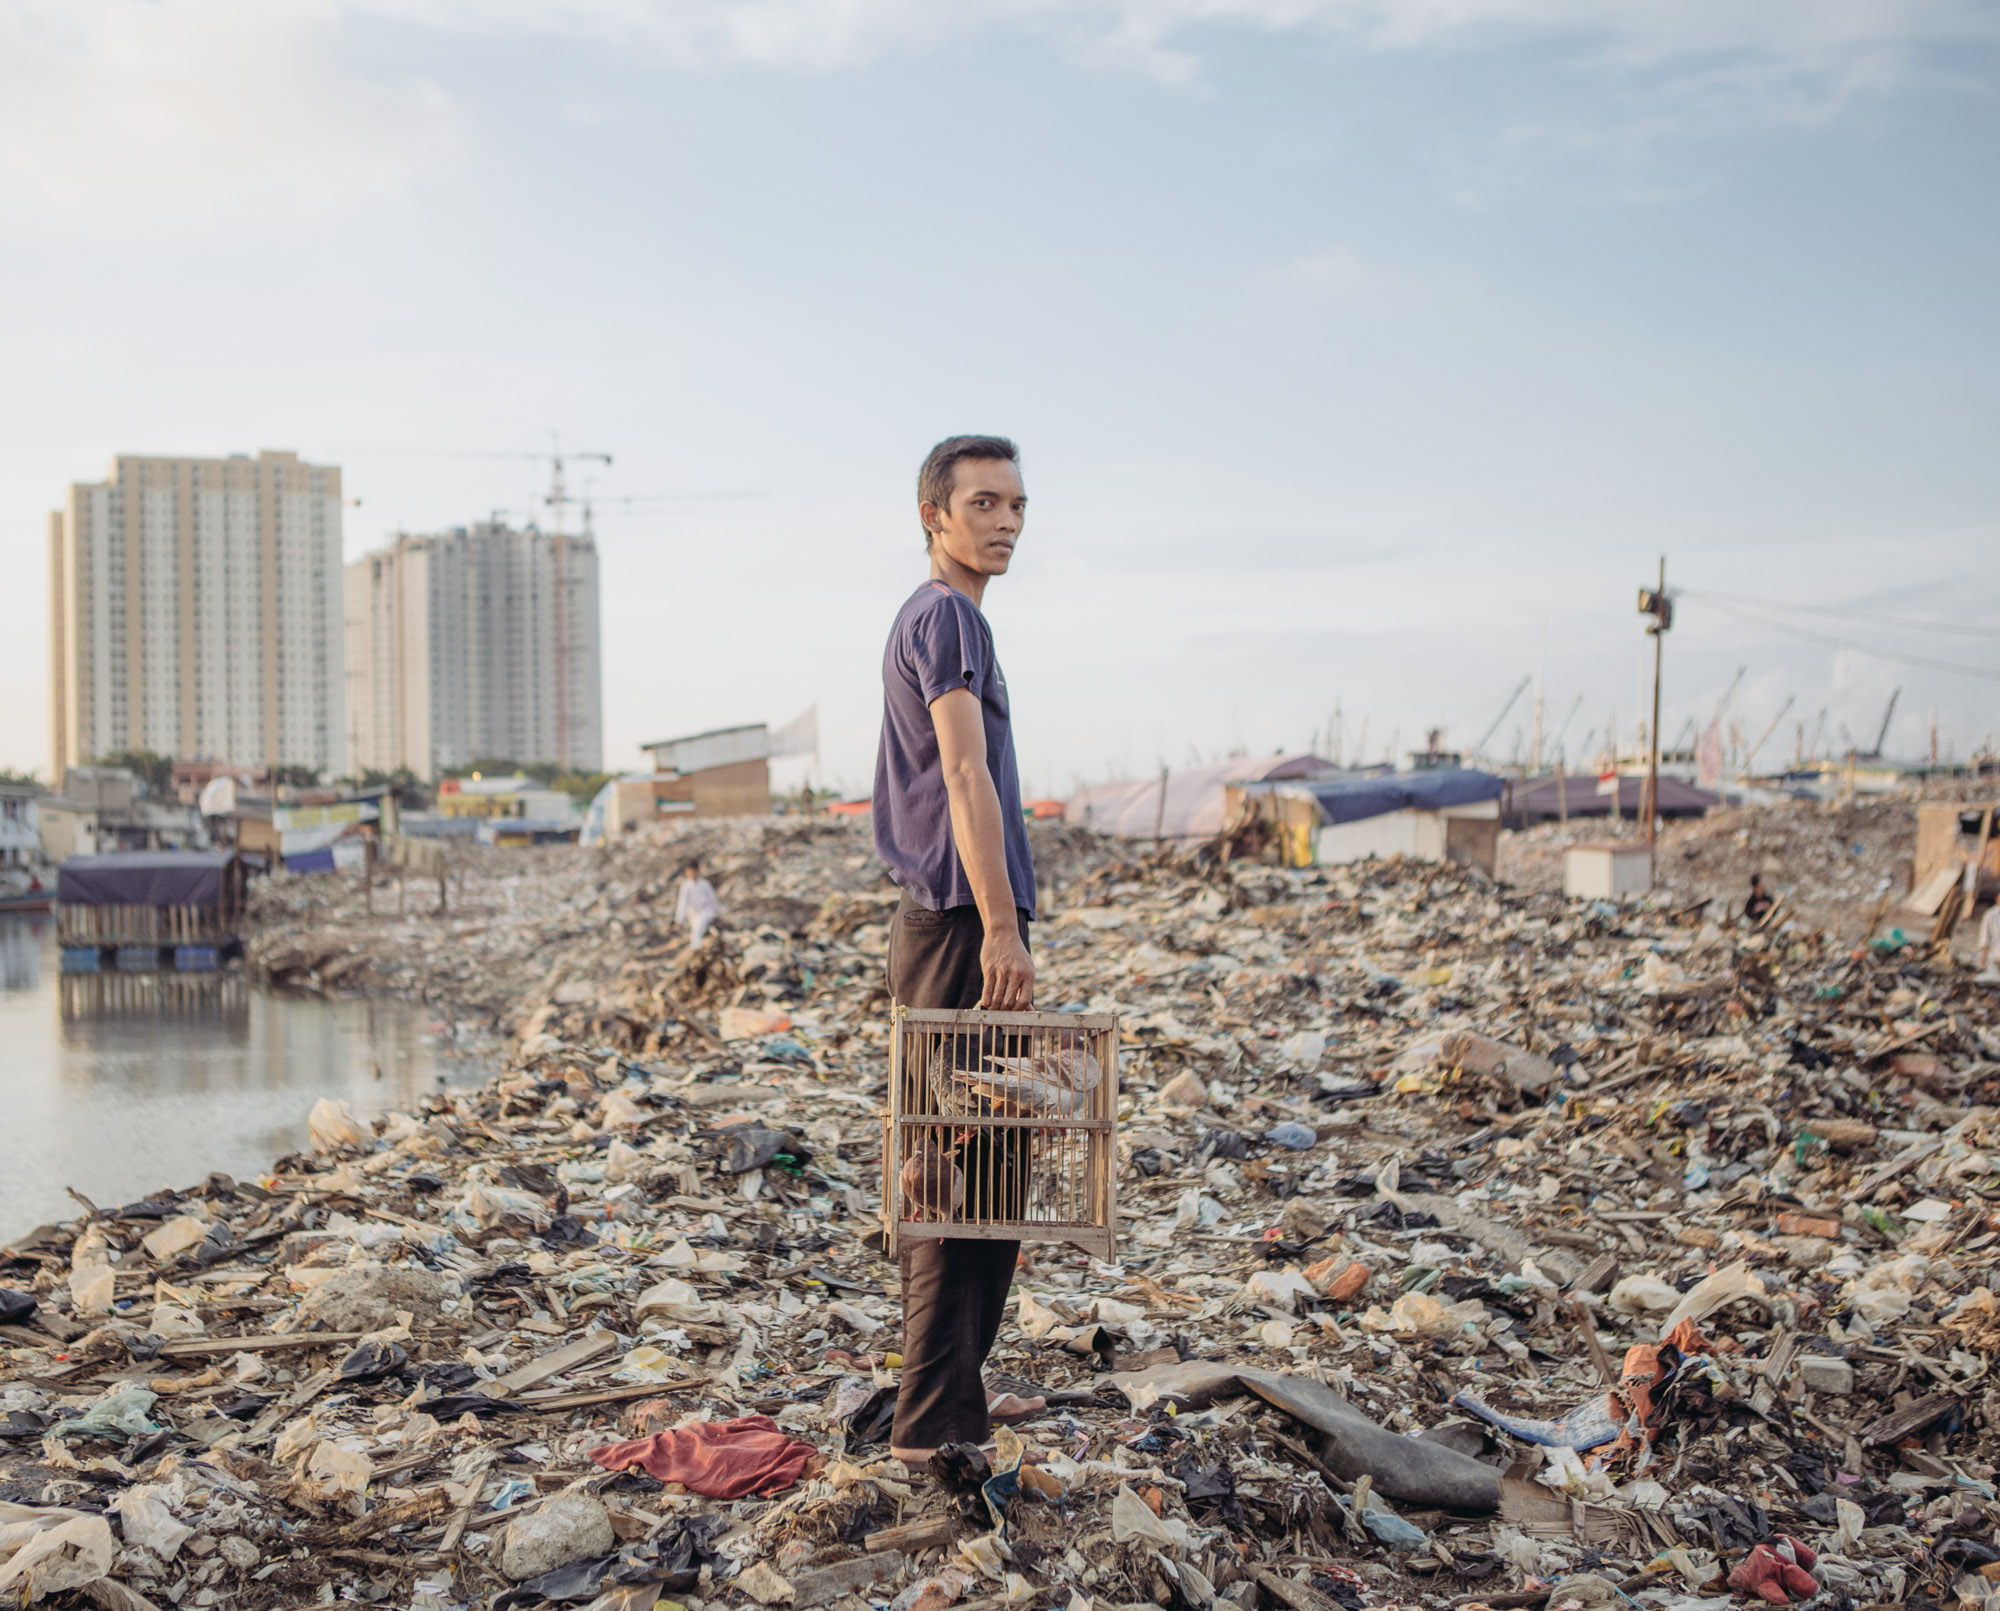 A man with his pigeons posed for photographs in Pasar Ikan district of North Jakarta. As part of Jakarta's river revitalization project, a settlement in this district was recently razed, leaving its residents homeless. It's part of an effort to combat sea level rise, worsened by climate change. (Photo by Muhammad Fadli/GroundTruth)